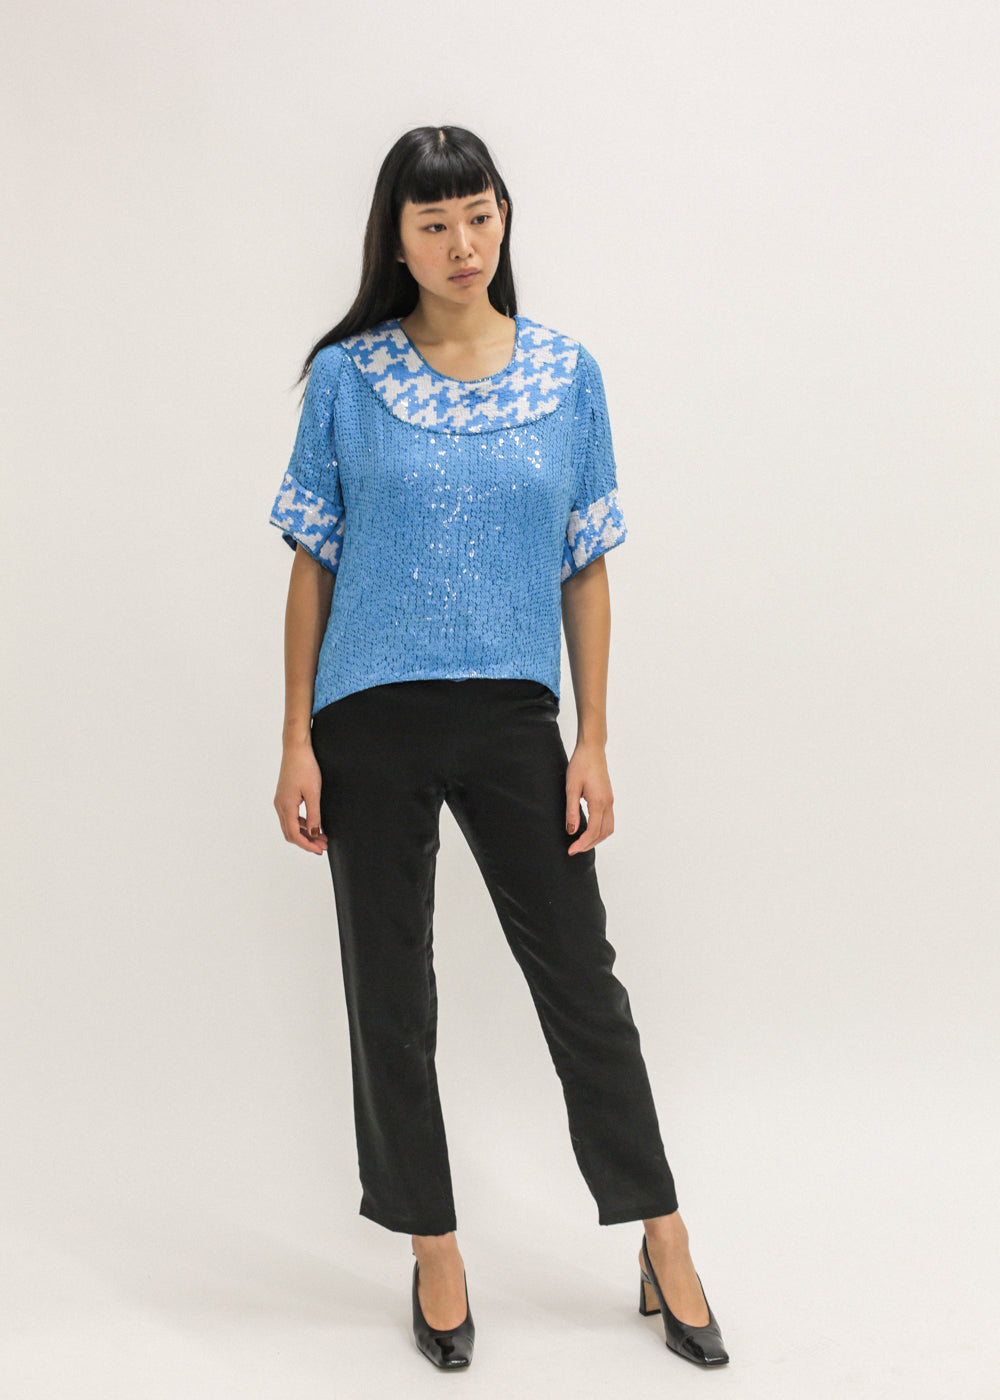 Pre by New Classics Vintage Blue Sequin Top — Shop sustainable fashion and slow fashion at New Classics Studios